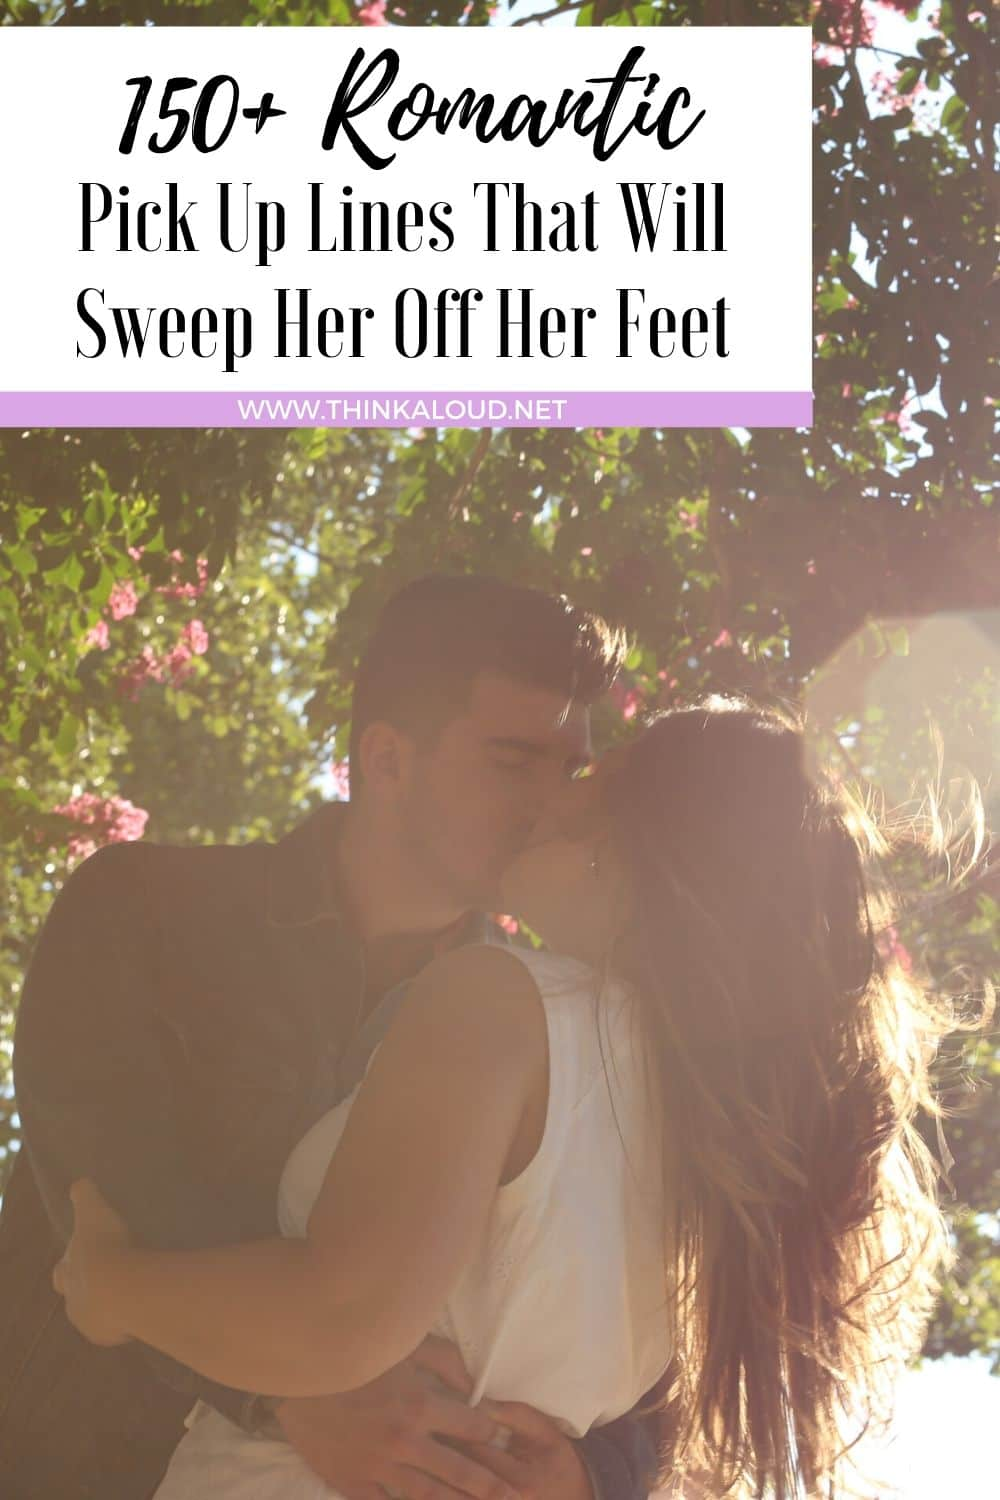 150+ Romantic Pick Up Lines That Will Sweep Her Off Her Feet